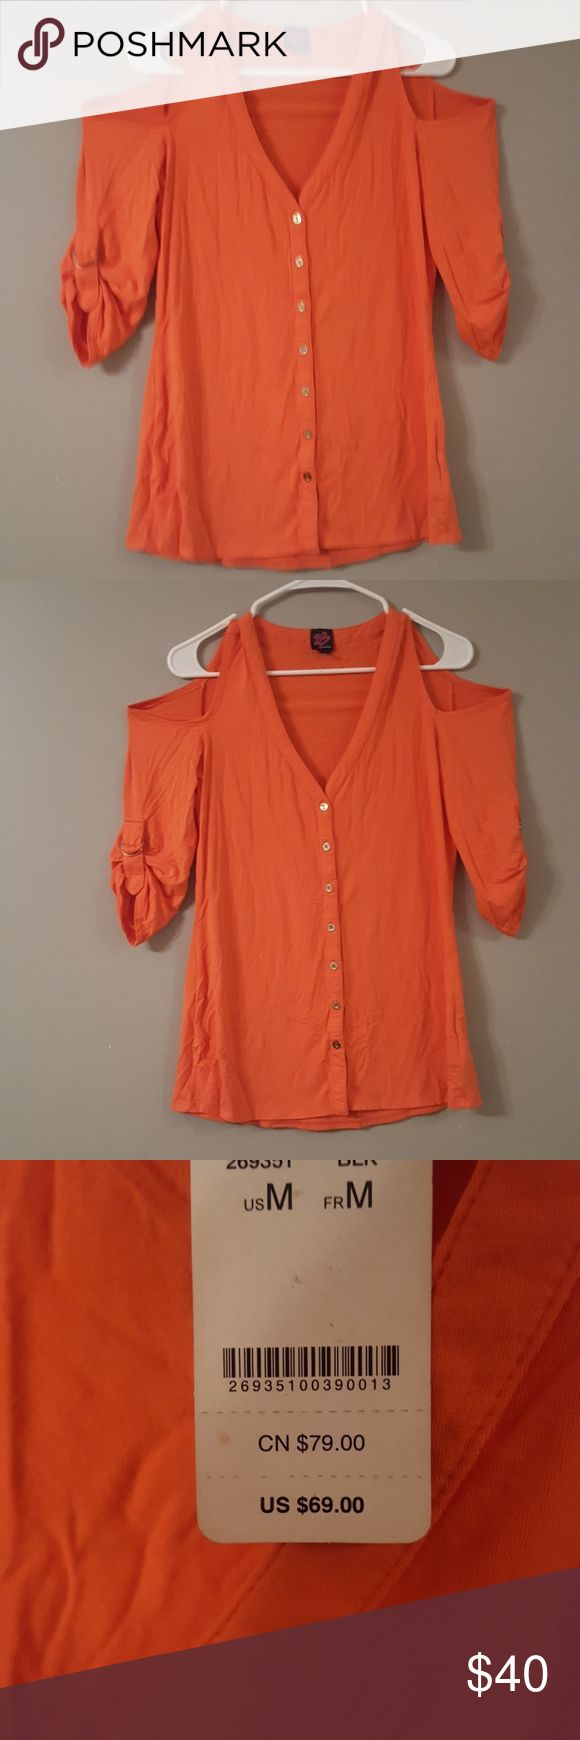 NWT 2BEBE COLD SHOULDER TOP WAS OVER $80 THIS IS A NWT 2BEBE COLD SHOULDER TOP SIZE MEDIUM A TANGERINE COLOR WITH GOLD BUTTON DOWN TOP. THE SLEEVES CAN BE LIKE THIS(UP & RUCHSED) OR DOWN FOR A DIFFERENT LOOK. I PAID OVER $80 DOLLARS BC MY NEAREST BEBE STORE IS 4 HOURS AWAY, SO I PAID FOR TAX & SHIPPING. MY PRICE IS FIRM. ❌I GIVE A 25% DISCOUNT OFF 2 OF MY LISTINGS😲. THAT'S HUGE SAVINGS!!! BUNDLE AWAY! 2bebe Tops Blouses